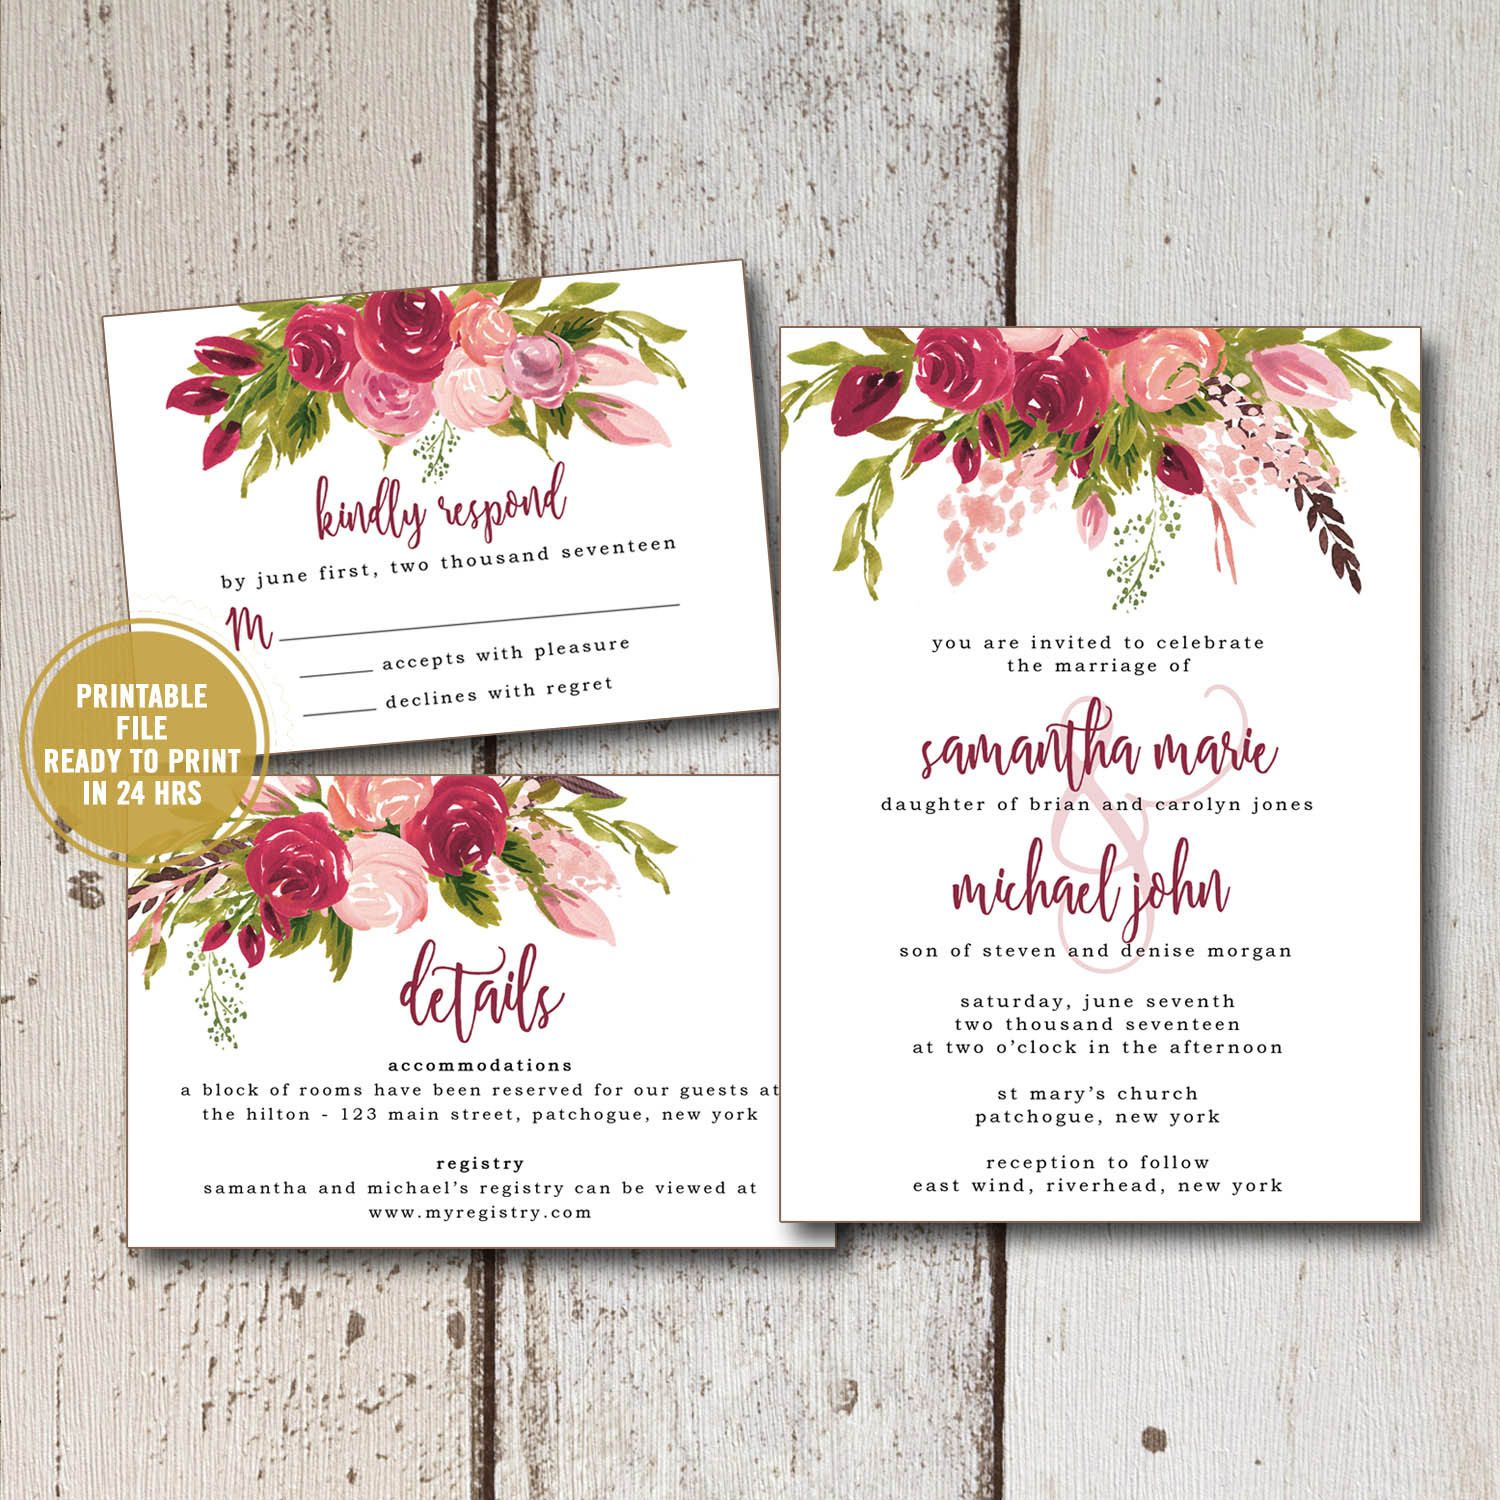 Printable Wedding Invitation Suite Rustic Fl Inserts Response Cards